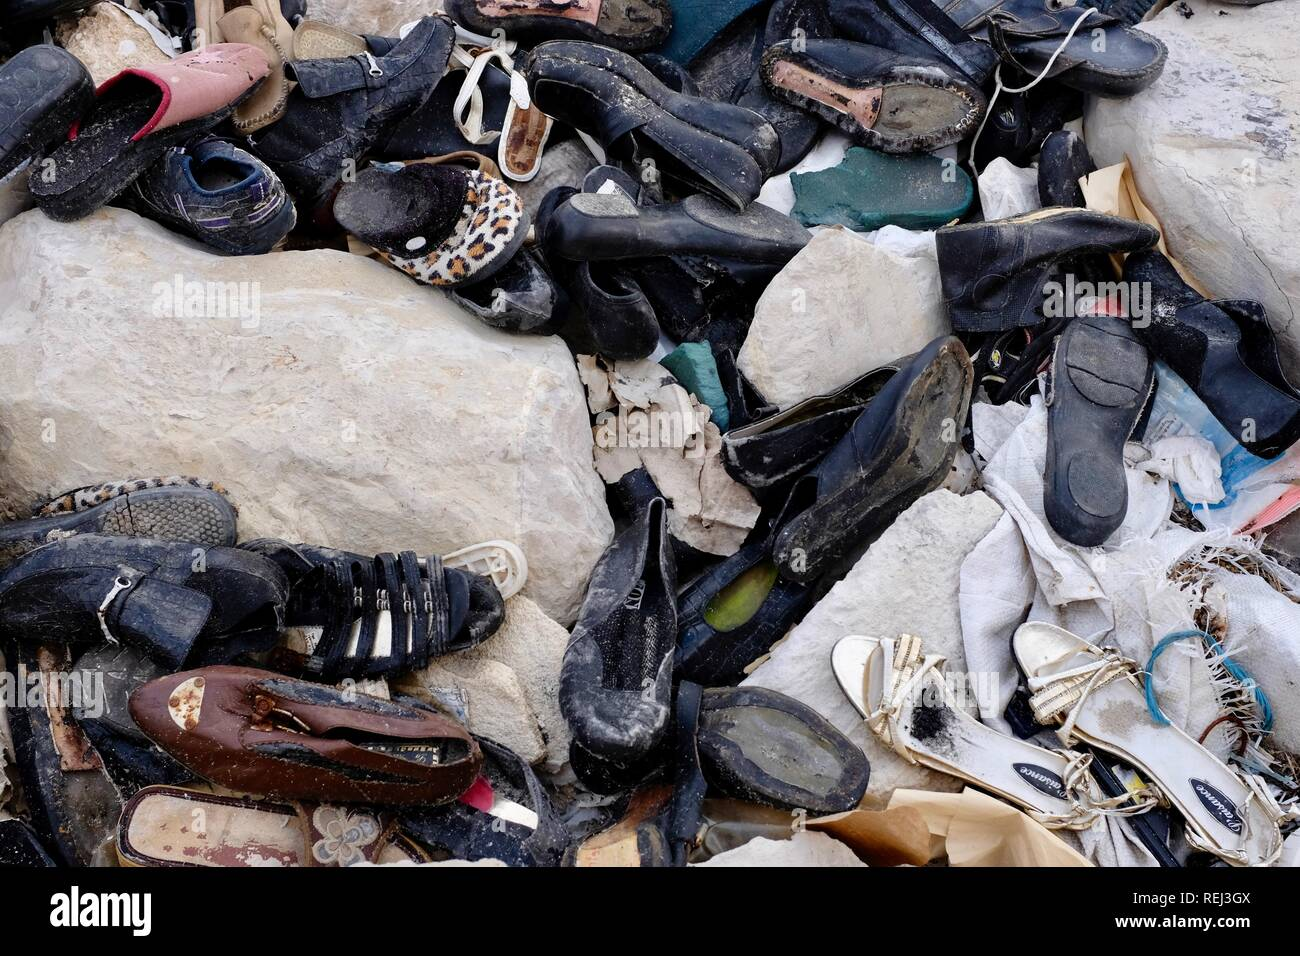 A pile old shoes dumped on the rocks on the coast - Stock Image